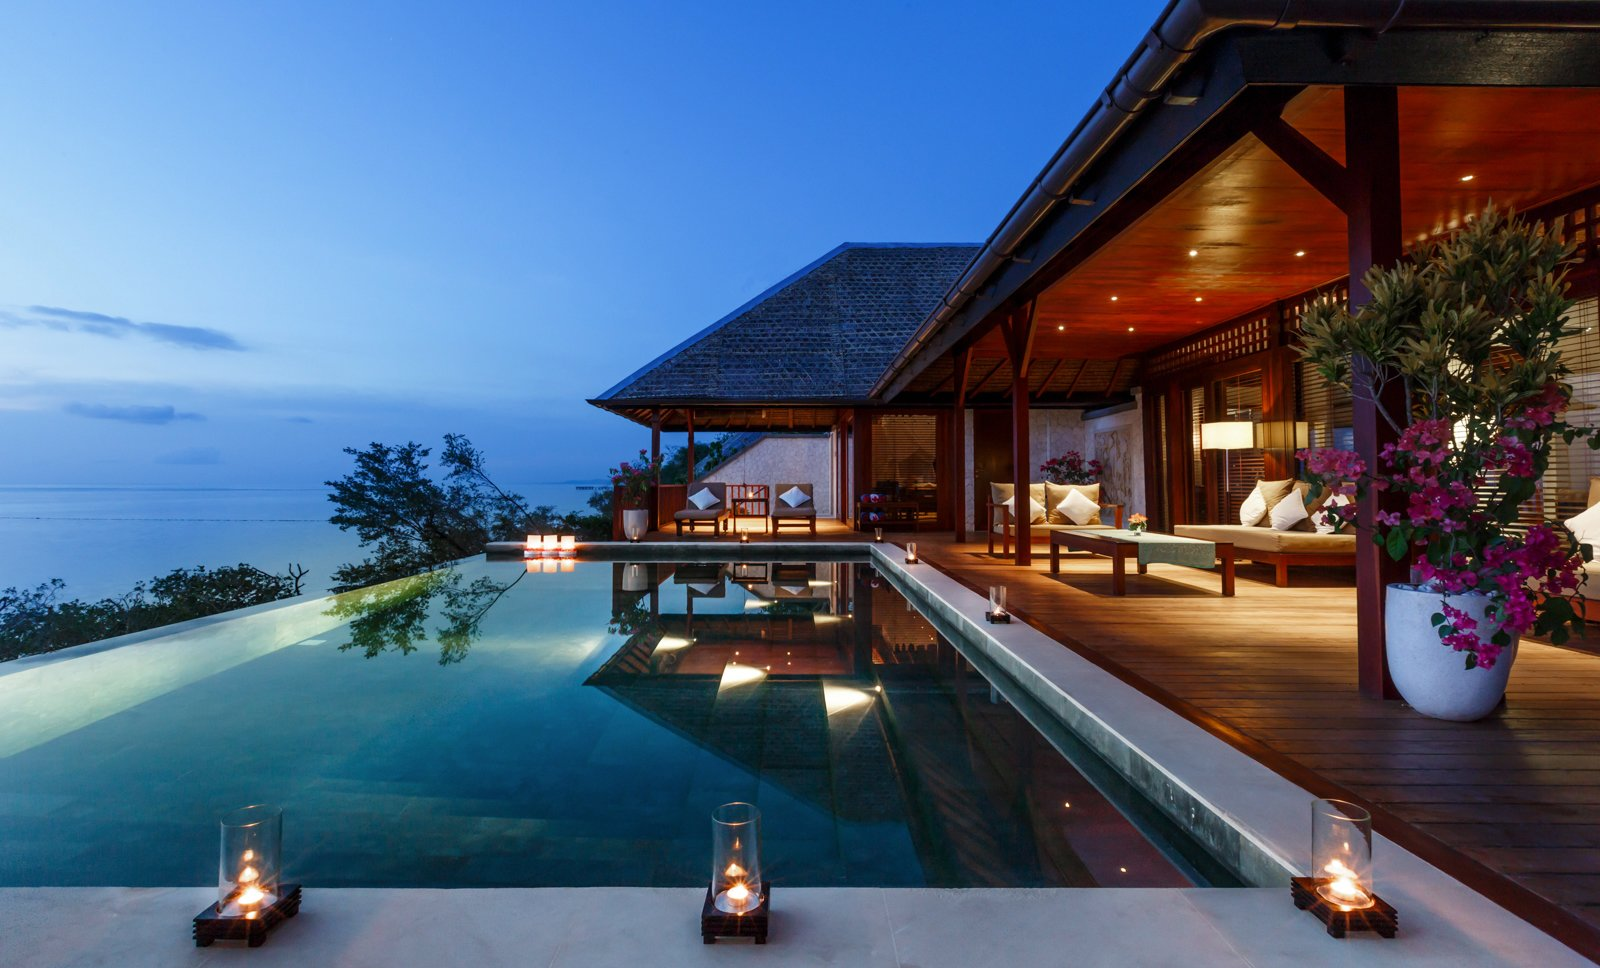 Surrounded by protected coral reefs and thriving marine life, this dive resort in Southeast Sulawesi has spacious ocean-view villas with Asian-style outdoor spa showers. The island can be reached only through a private 3-hour charter flight from Bali, so you can expect a high level of exclusivity here.  Photo 1 of 7 in 7 Incredible Island Villas in Indonesia